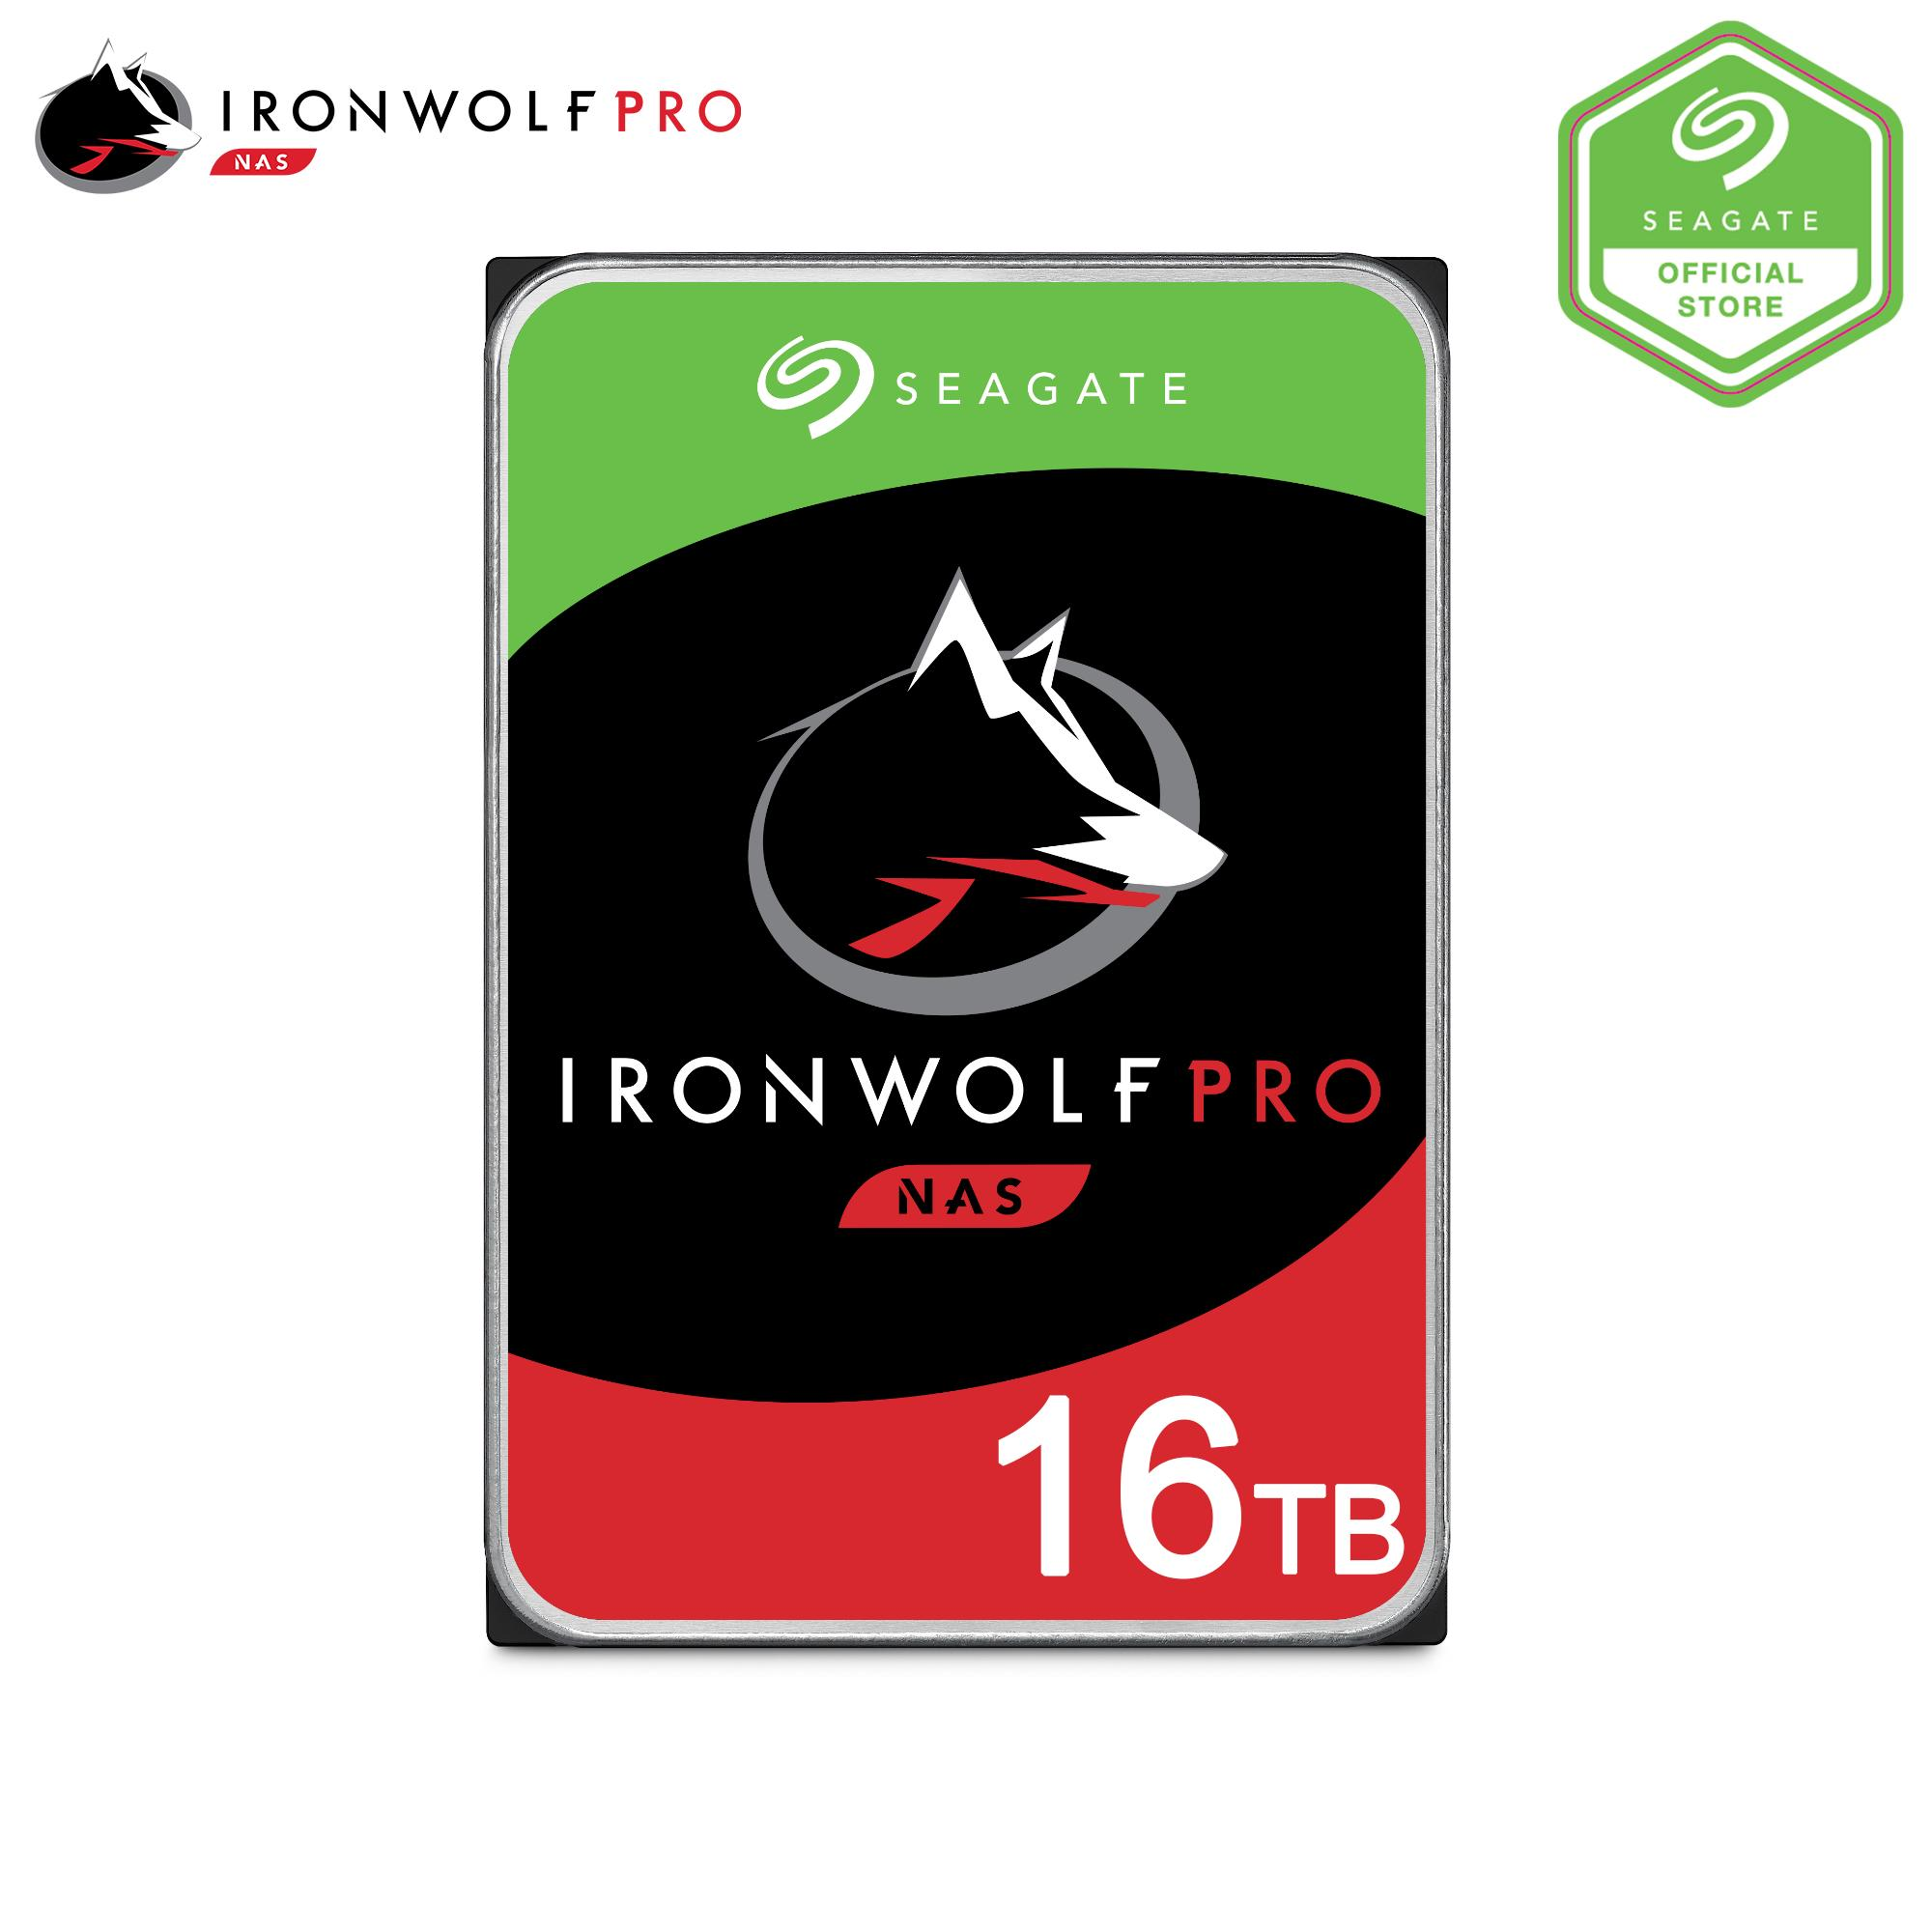 [seagate Official Store] Seagate Ironwolf Pro 3.5  16tb /14tb /12tb /10tb /8tb /6tb /4tb  Desktop Hard Disk.  Seagate Singapore Warranty: 5 Years..